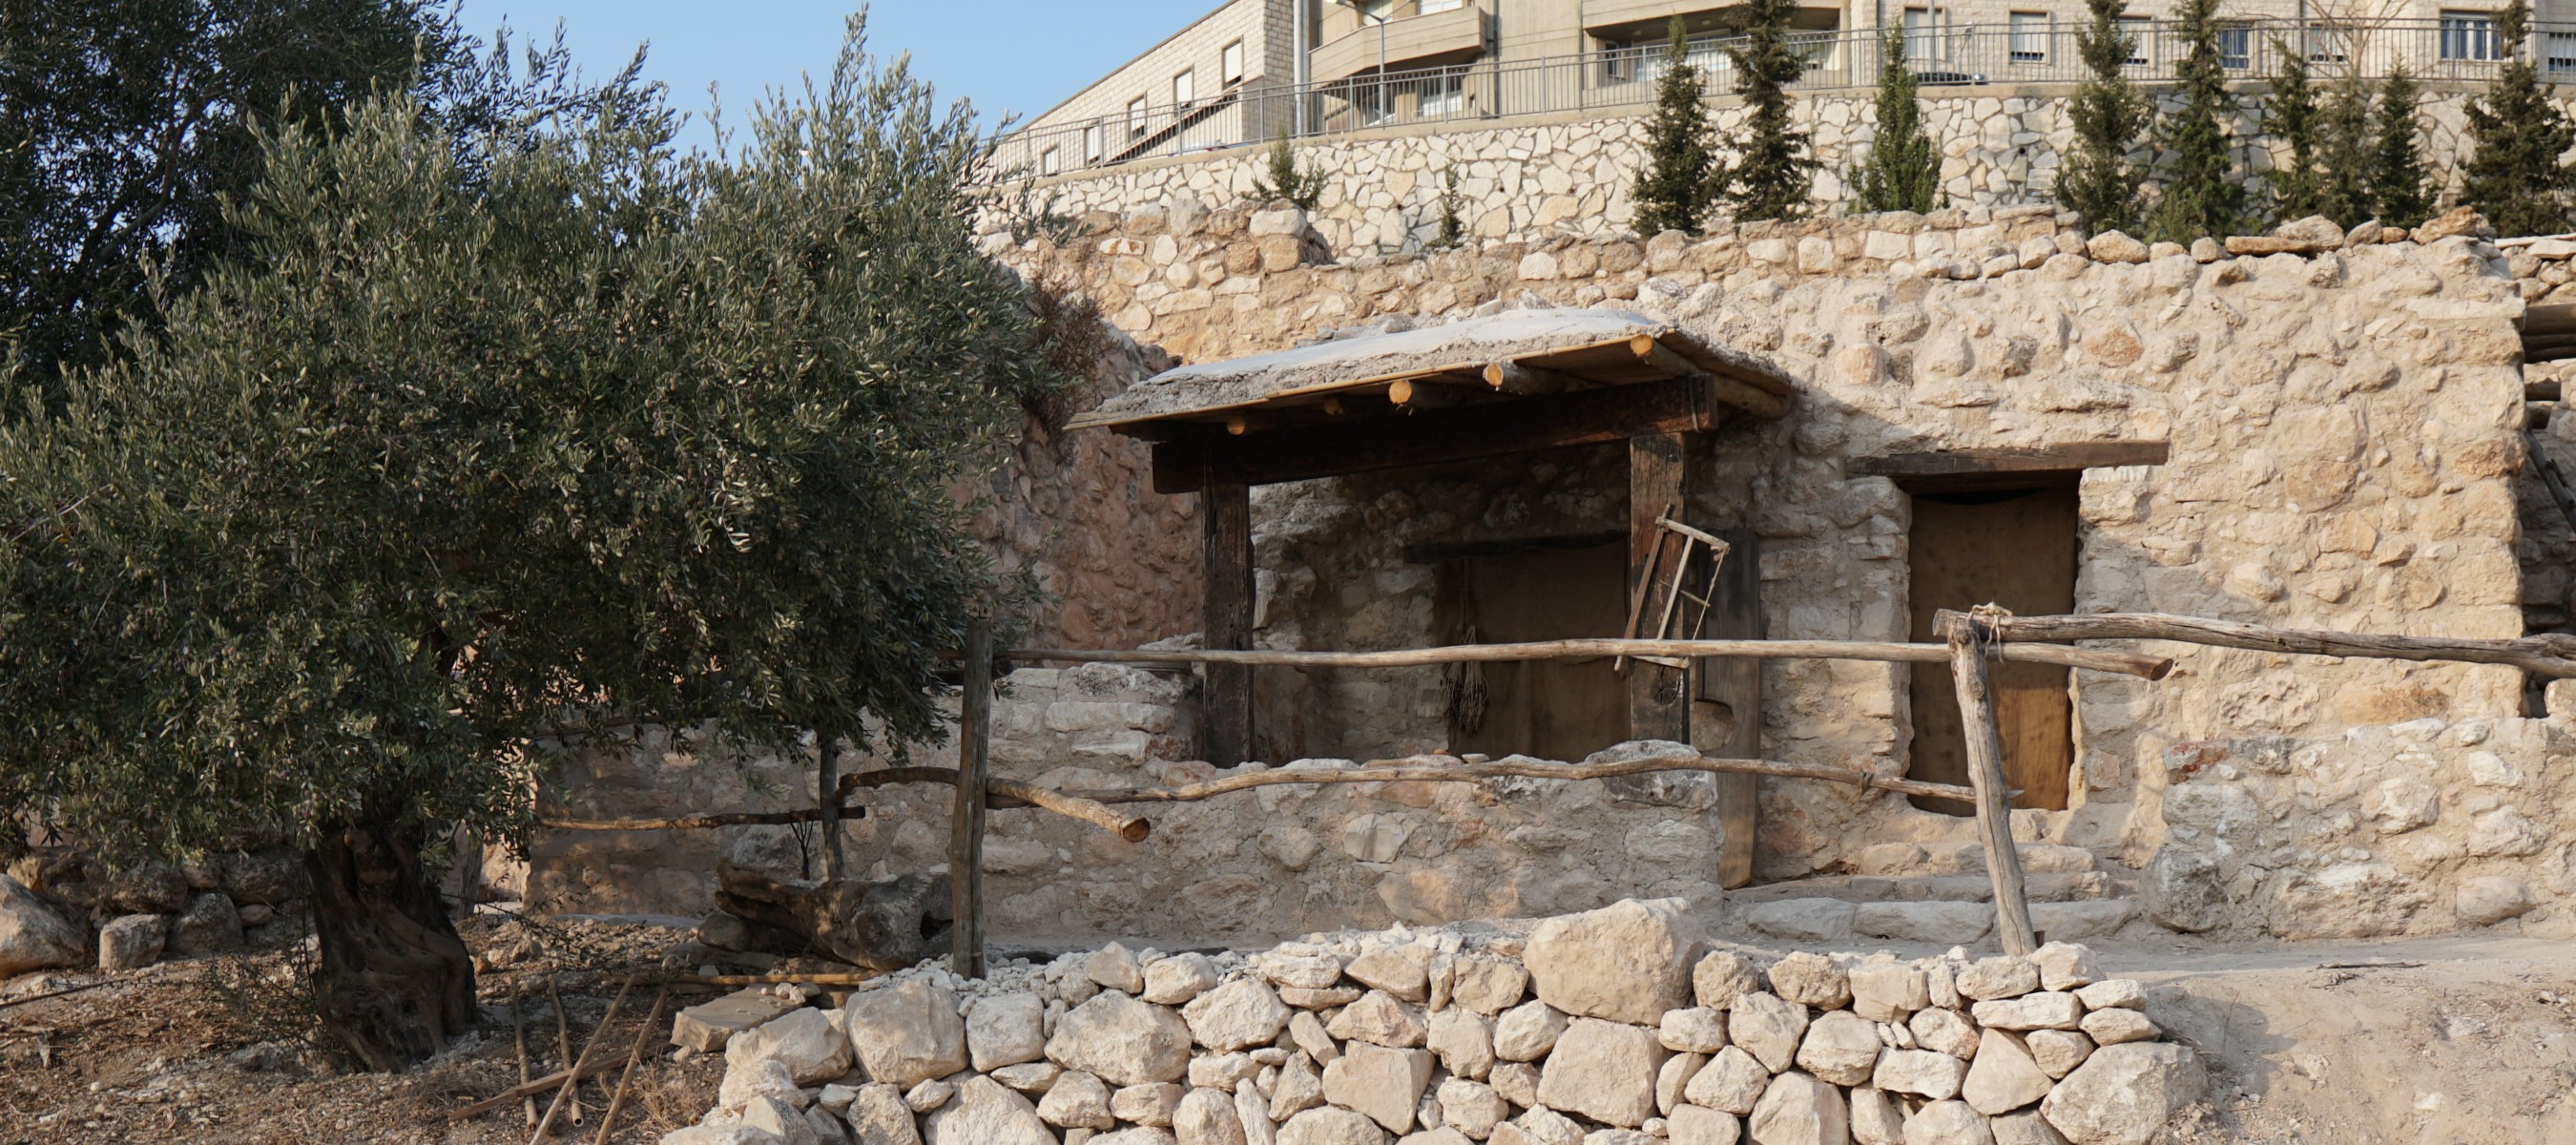 New Potter's Workshop moulded into our famous biblical tour